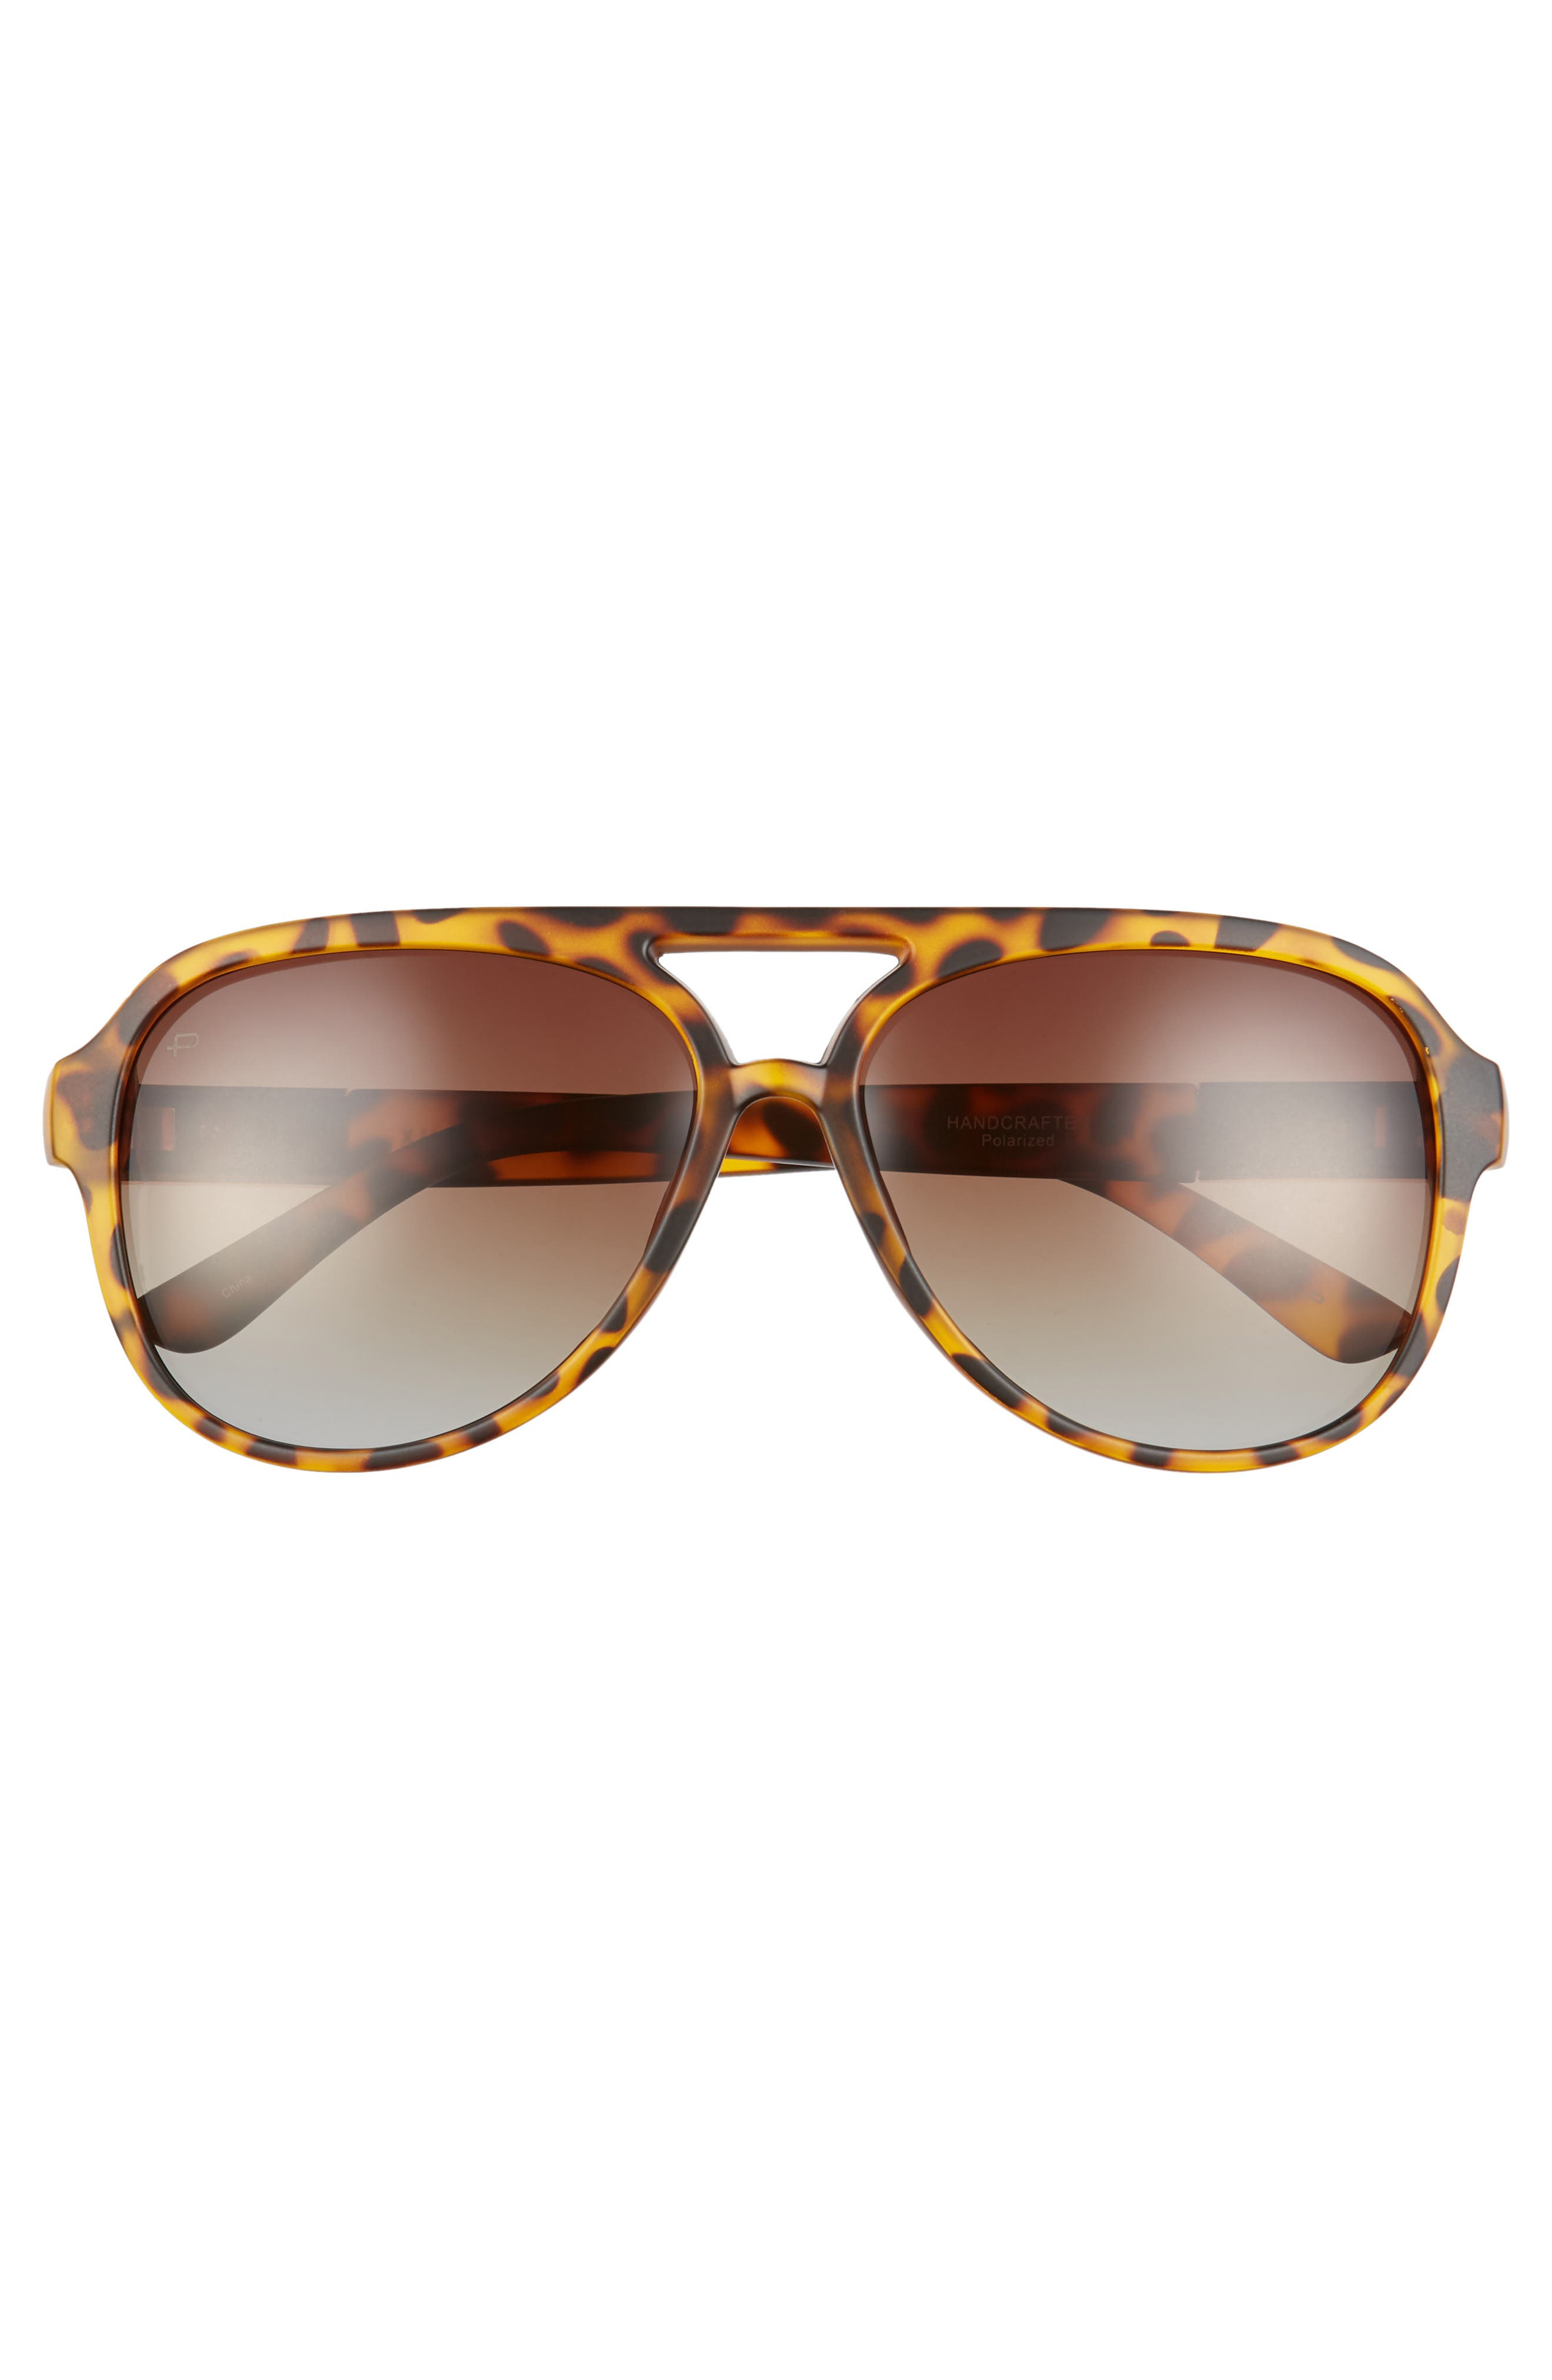 Privé Revaux The Nash 58mm Aviator Sunglasses,                             Alternate thumbnail 3, color,                             BROWN